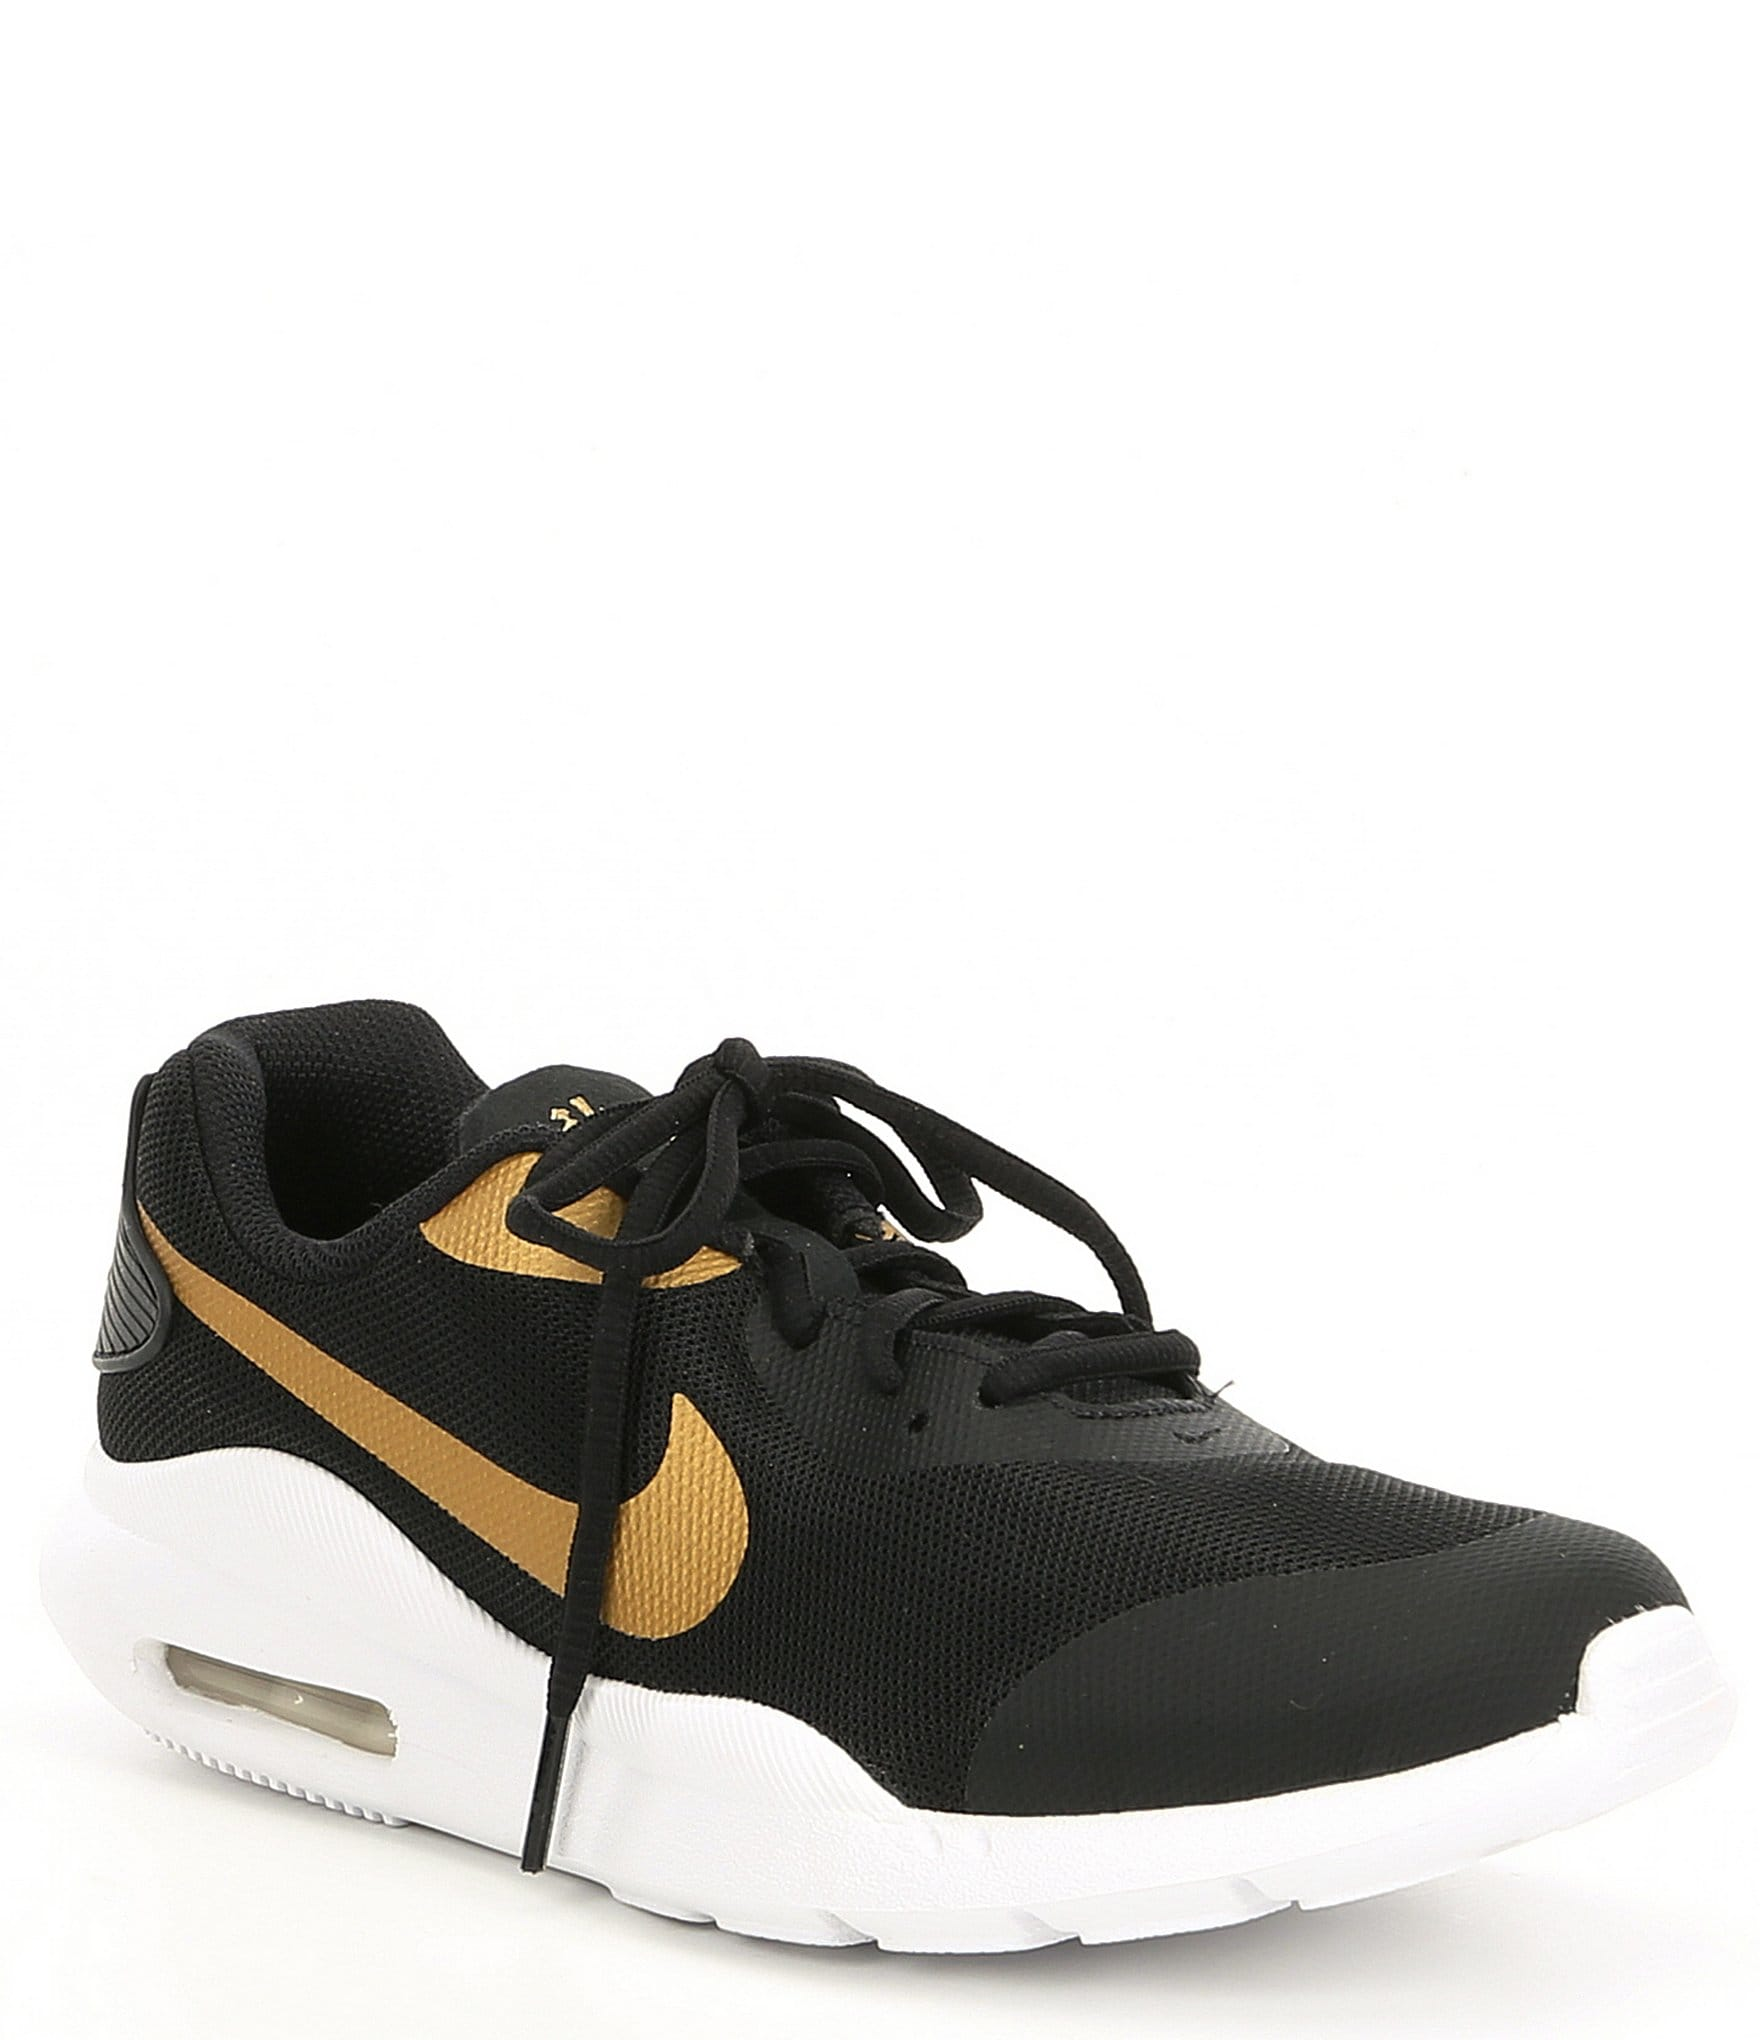 new arrival d620c b3c58 Nike Shoes   Dillard s